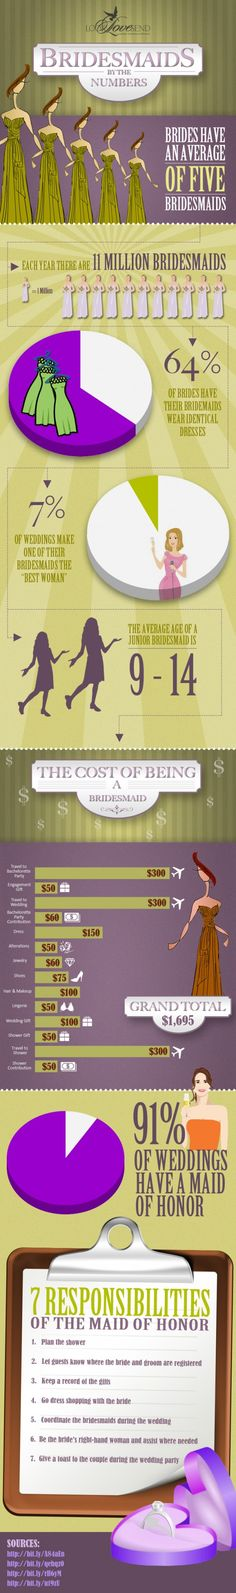 Bridesmaids by the Numbers. woah, i promise i'll try not to make you spend $1700. i think that would probably be a deal breaker for a few of you anyways. NOTED.